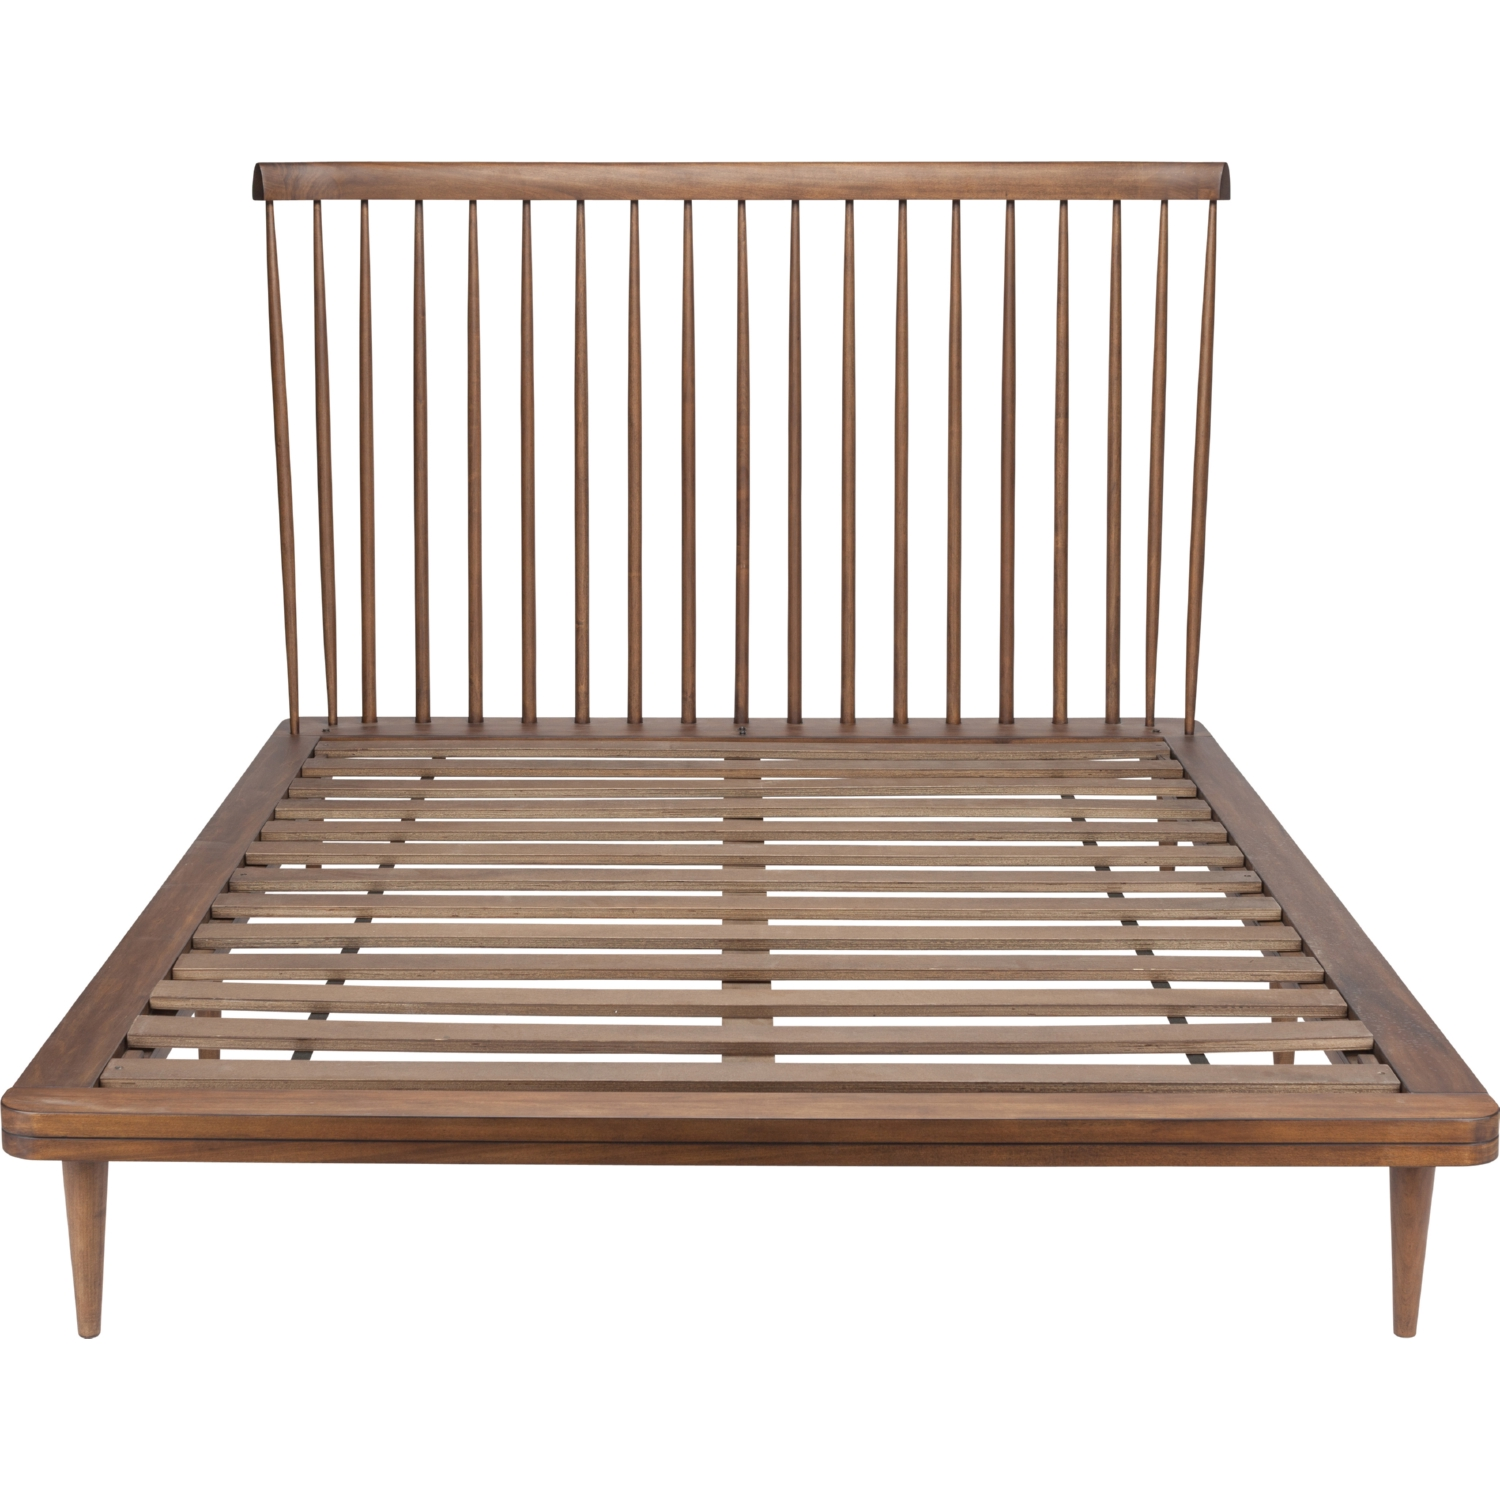 Picture of: Nuevo Hgst107 Jessika Queen Bed In Walnut Stain W Spindle Headboard